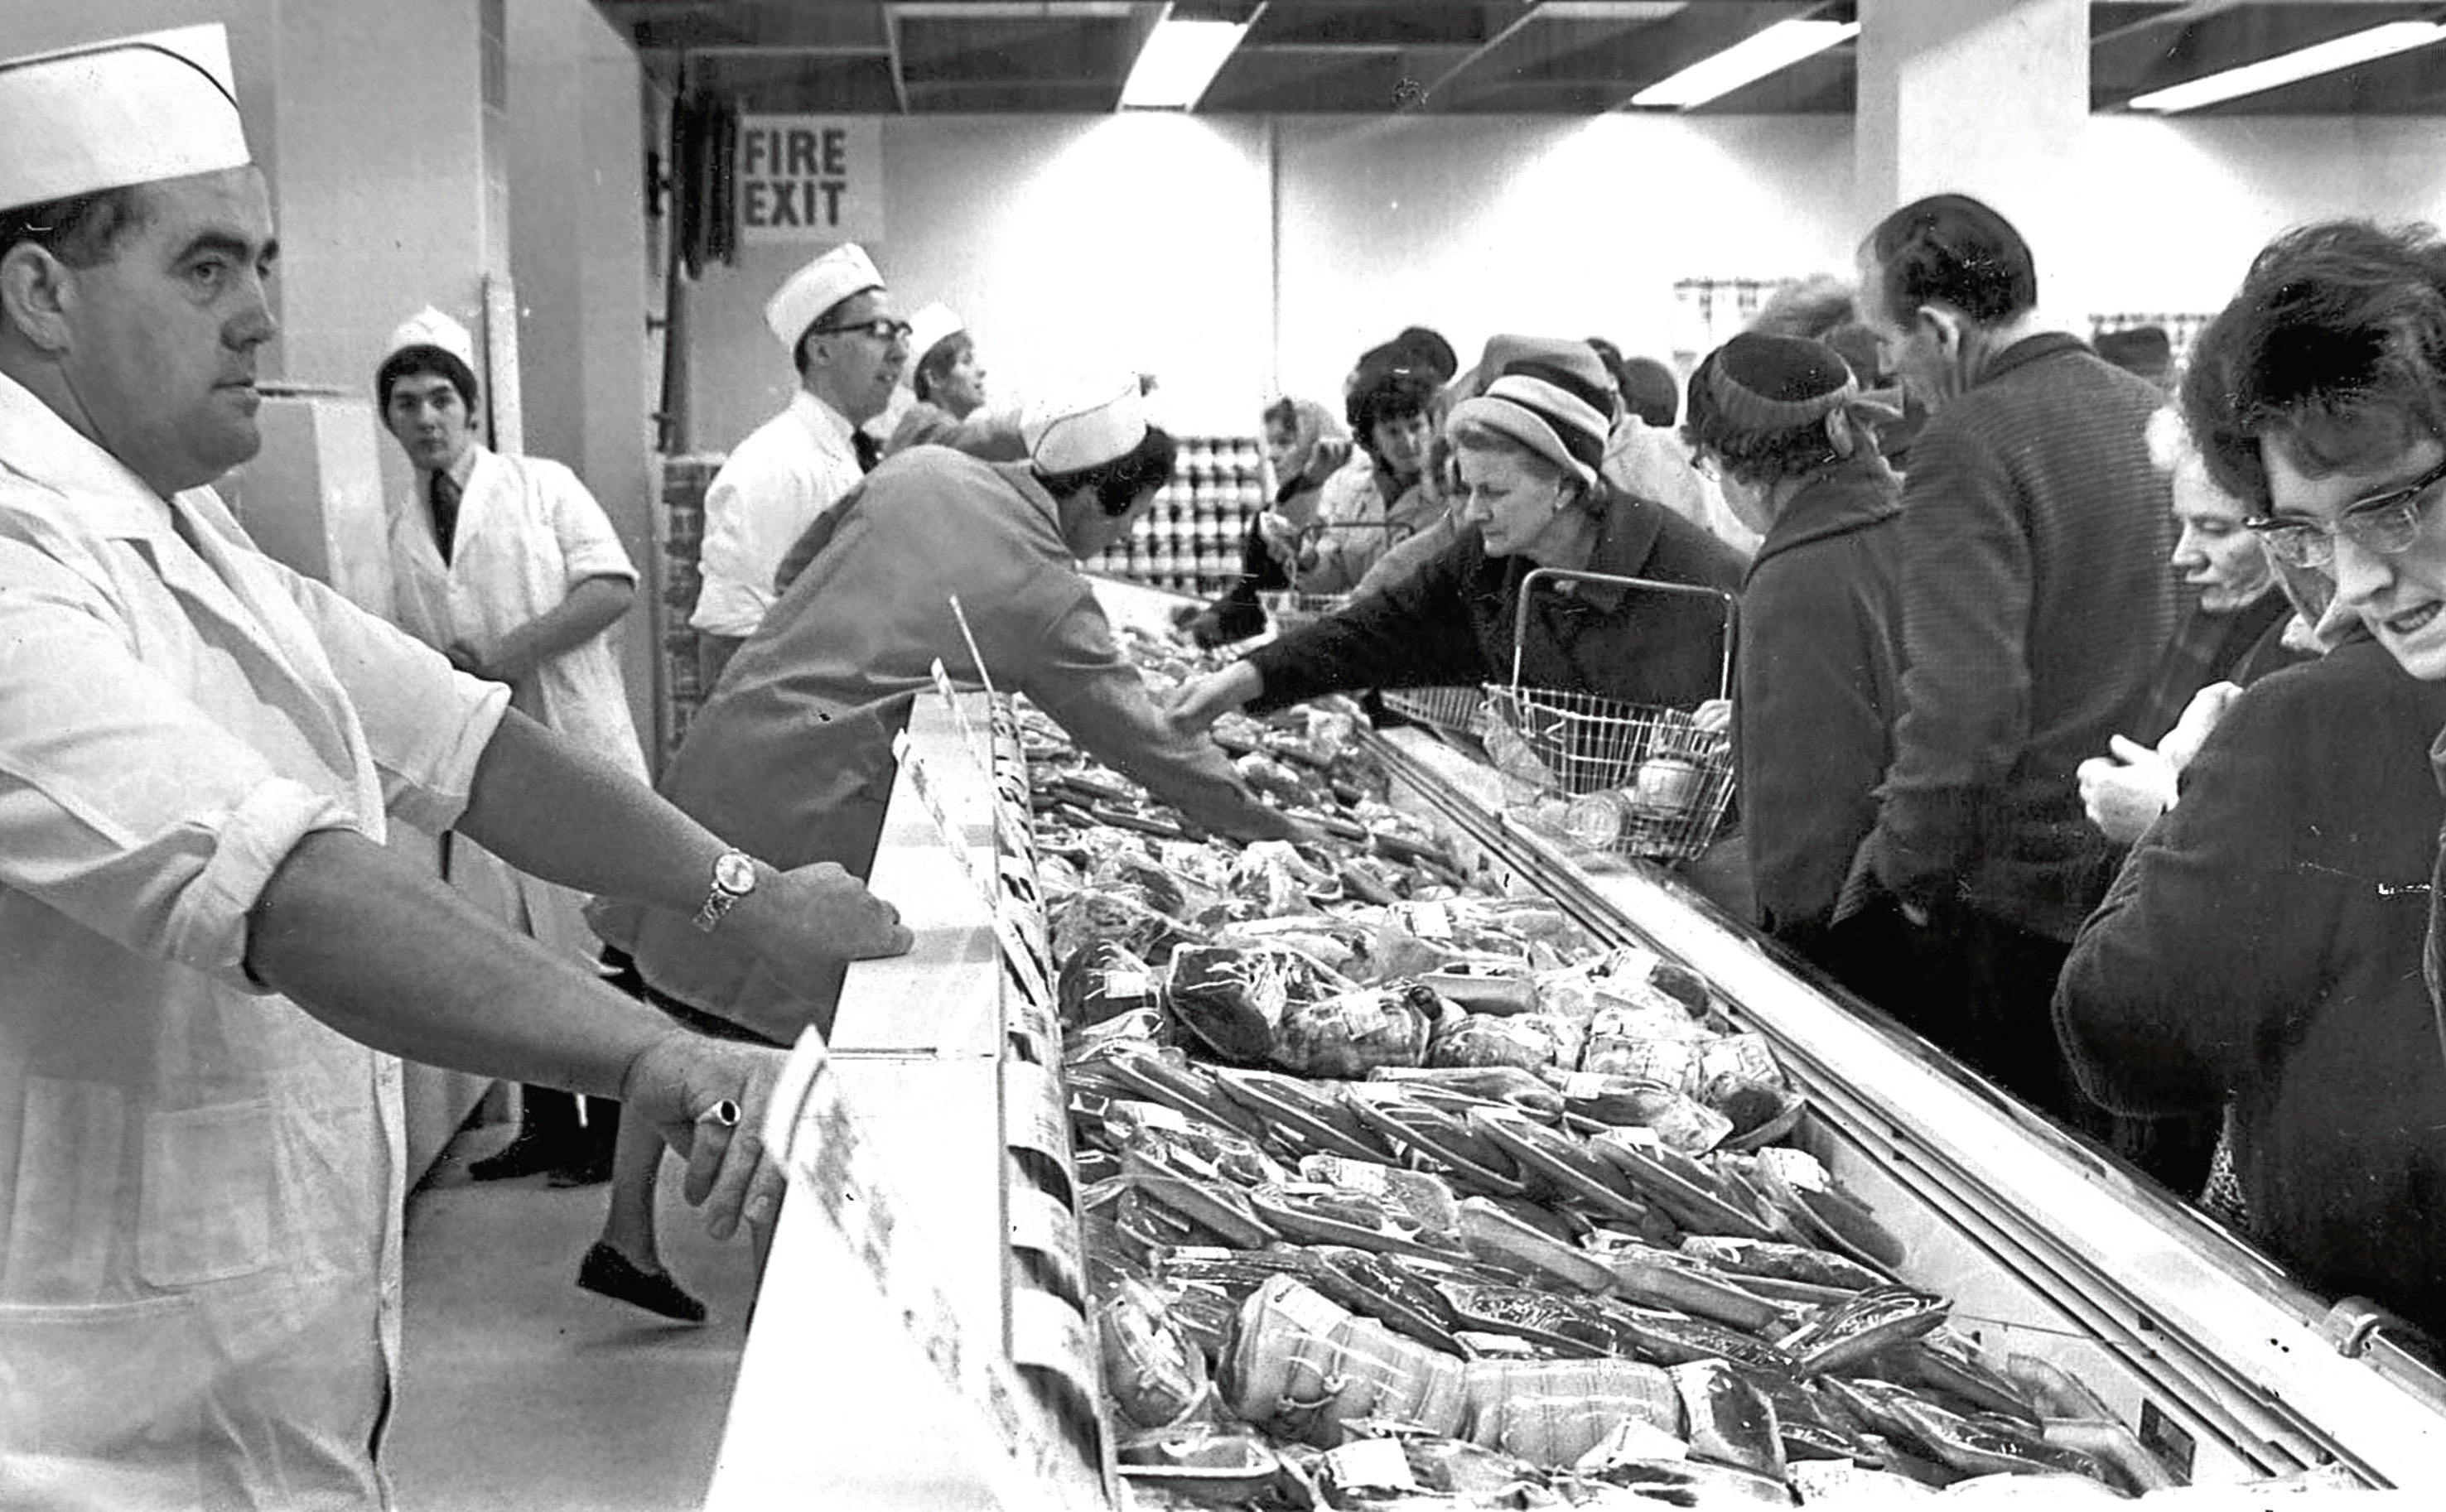 Shoppers in Grandfare's fresh meat section on the day it opened.